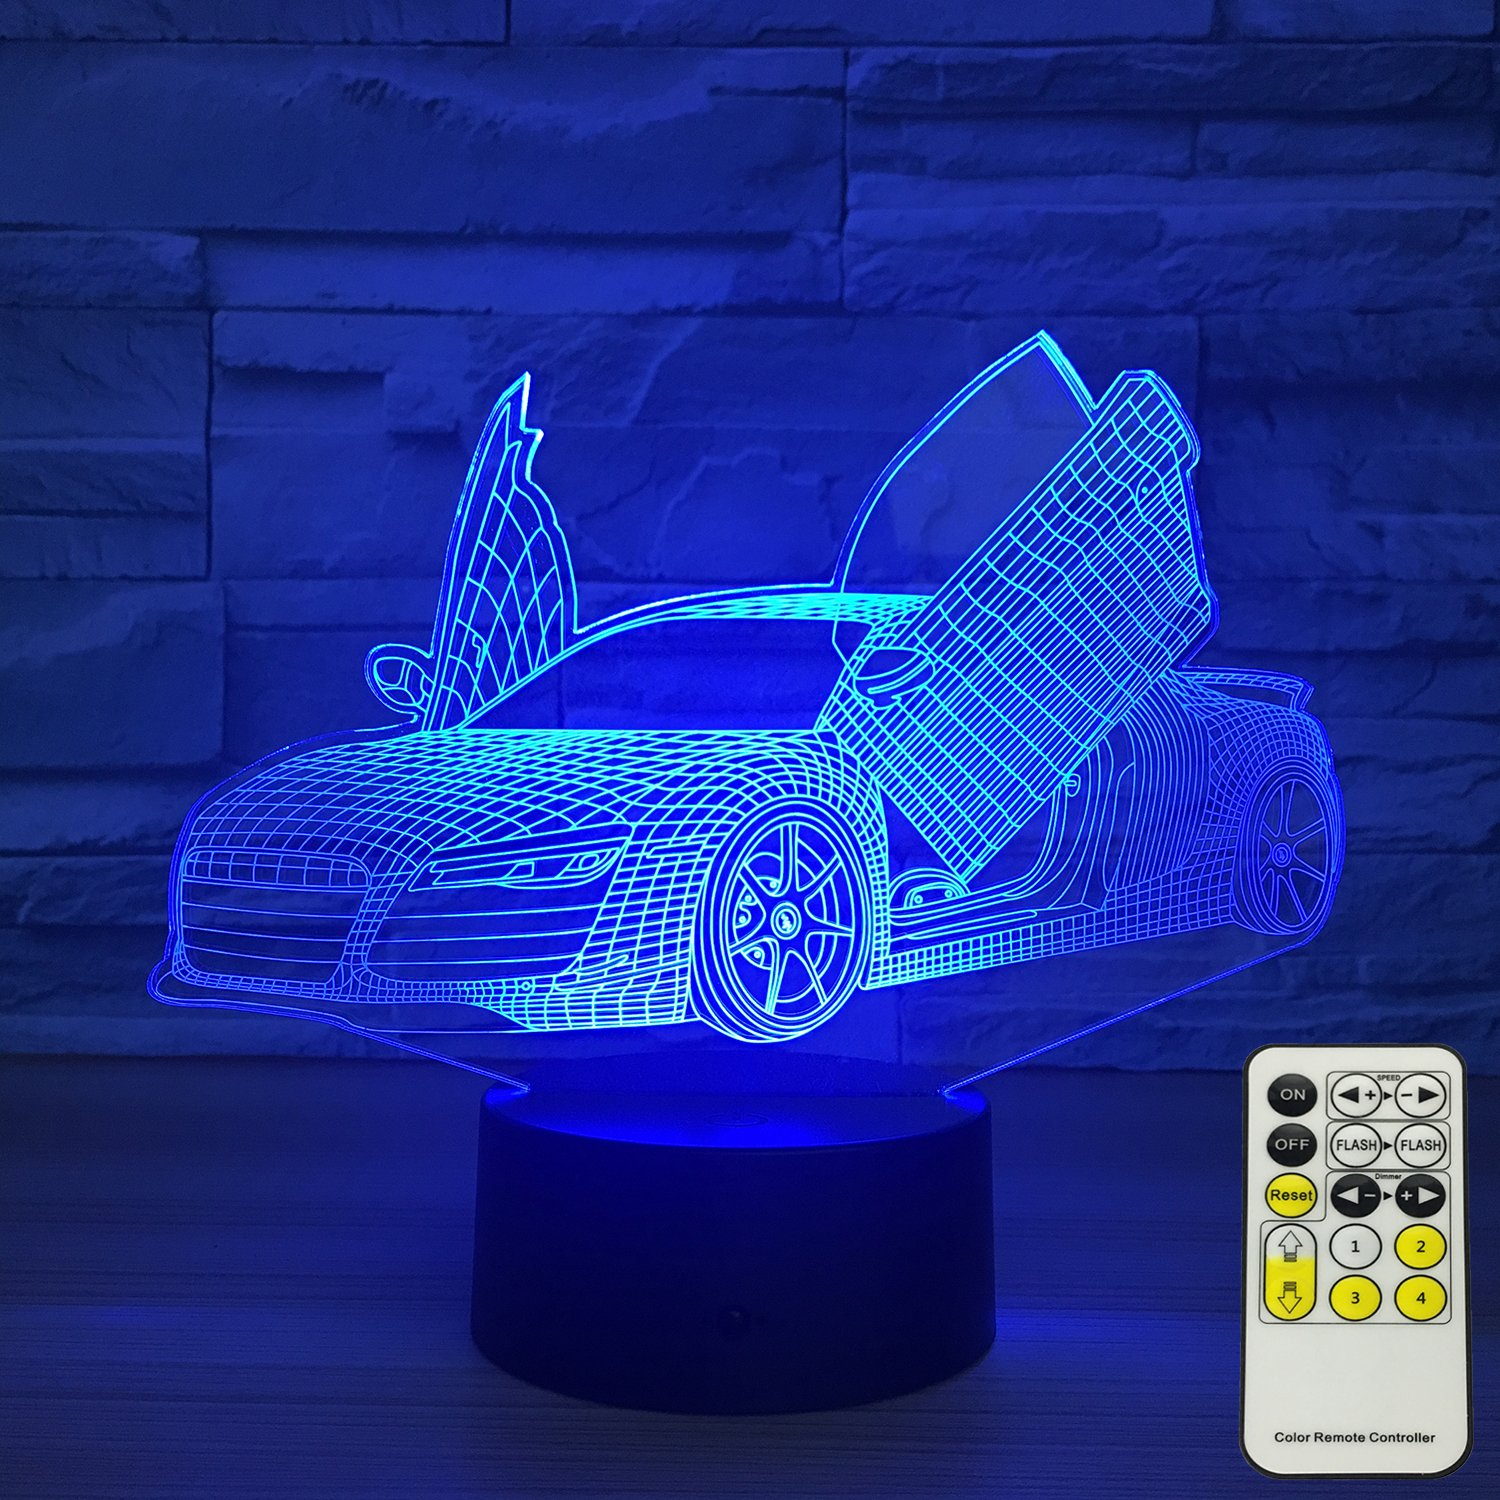 car 3d optical illusion lamps night lights for kids 7 colors change with touch remote control kids night light as a birthday gift ideas for boys sport